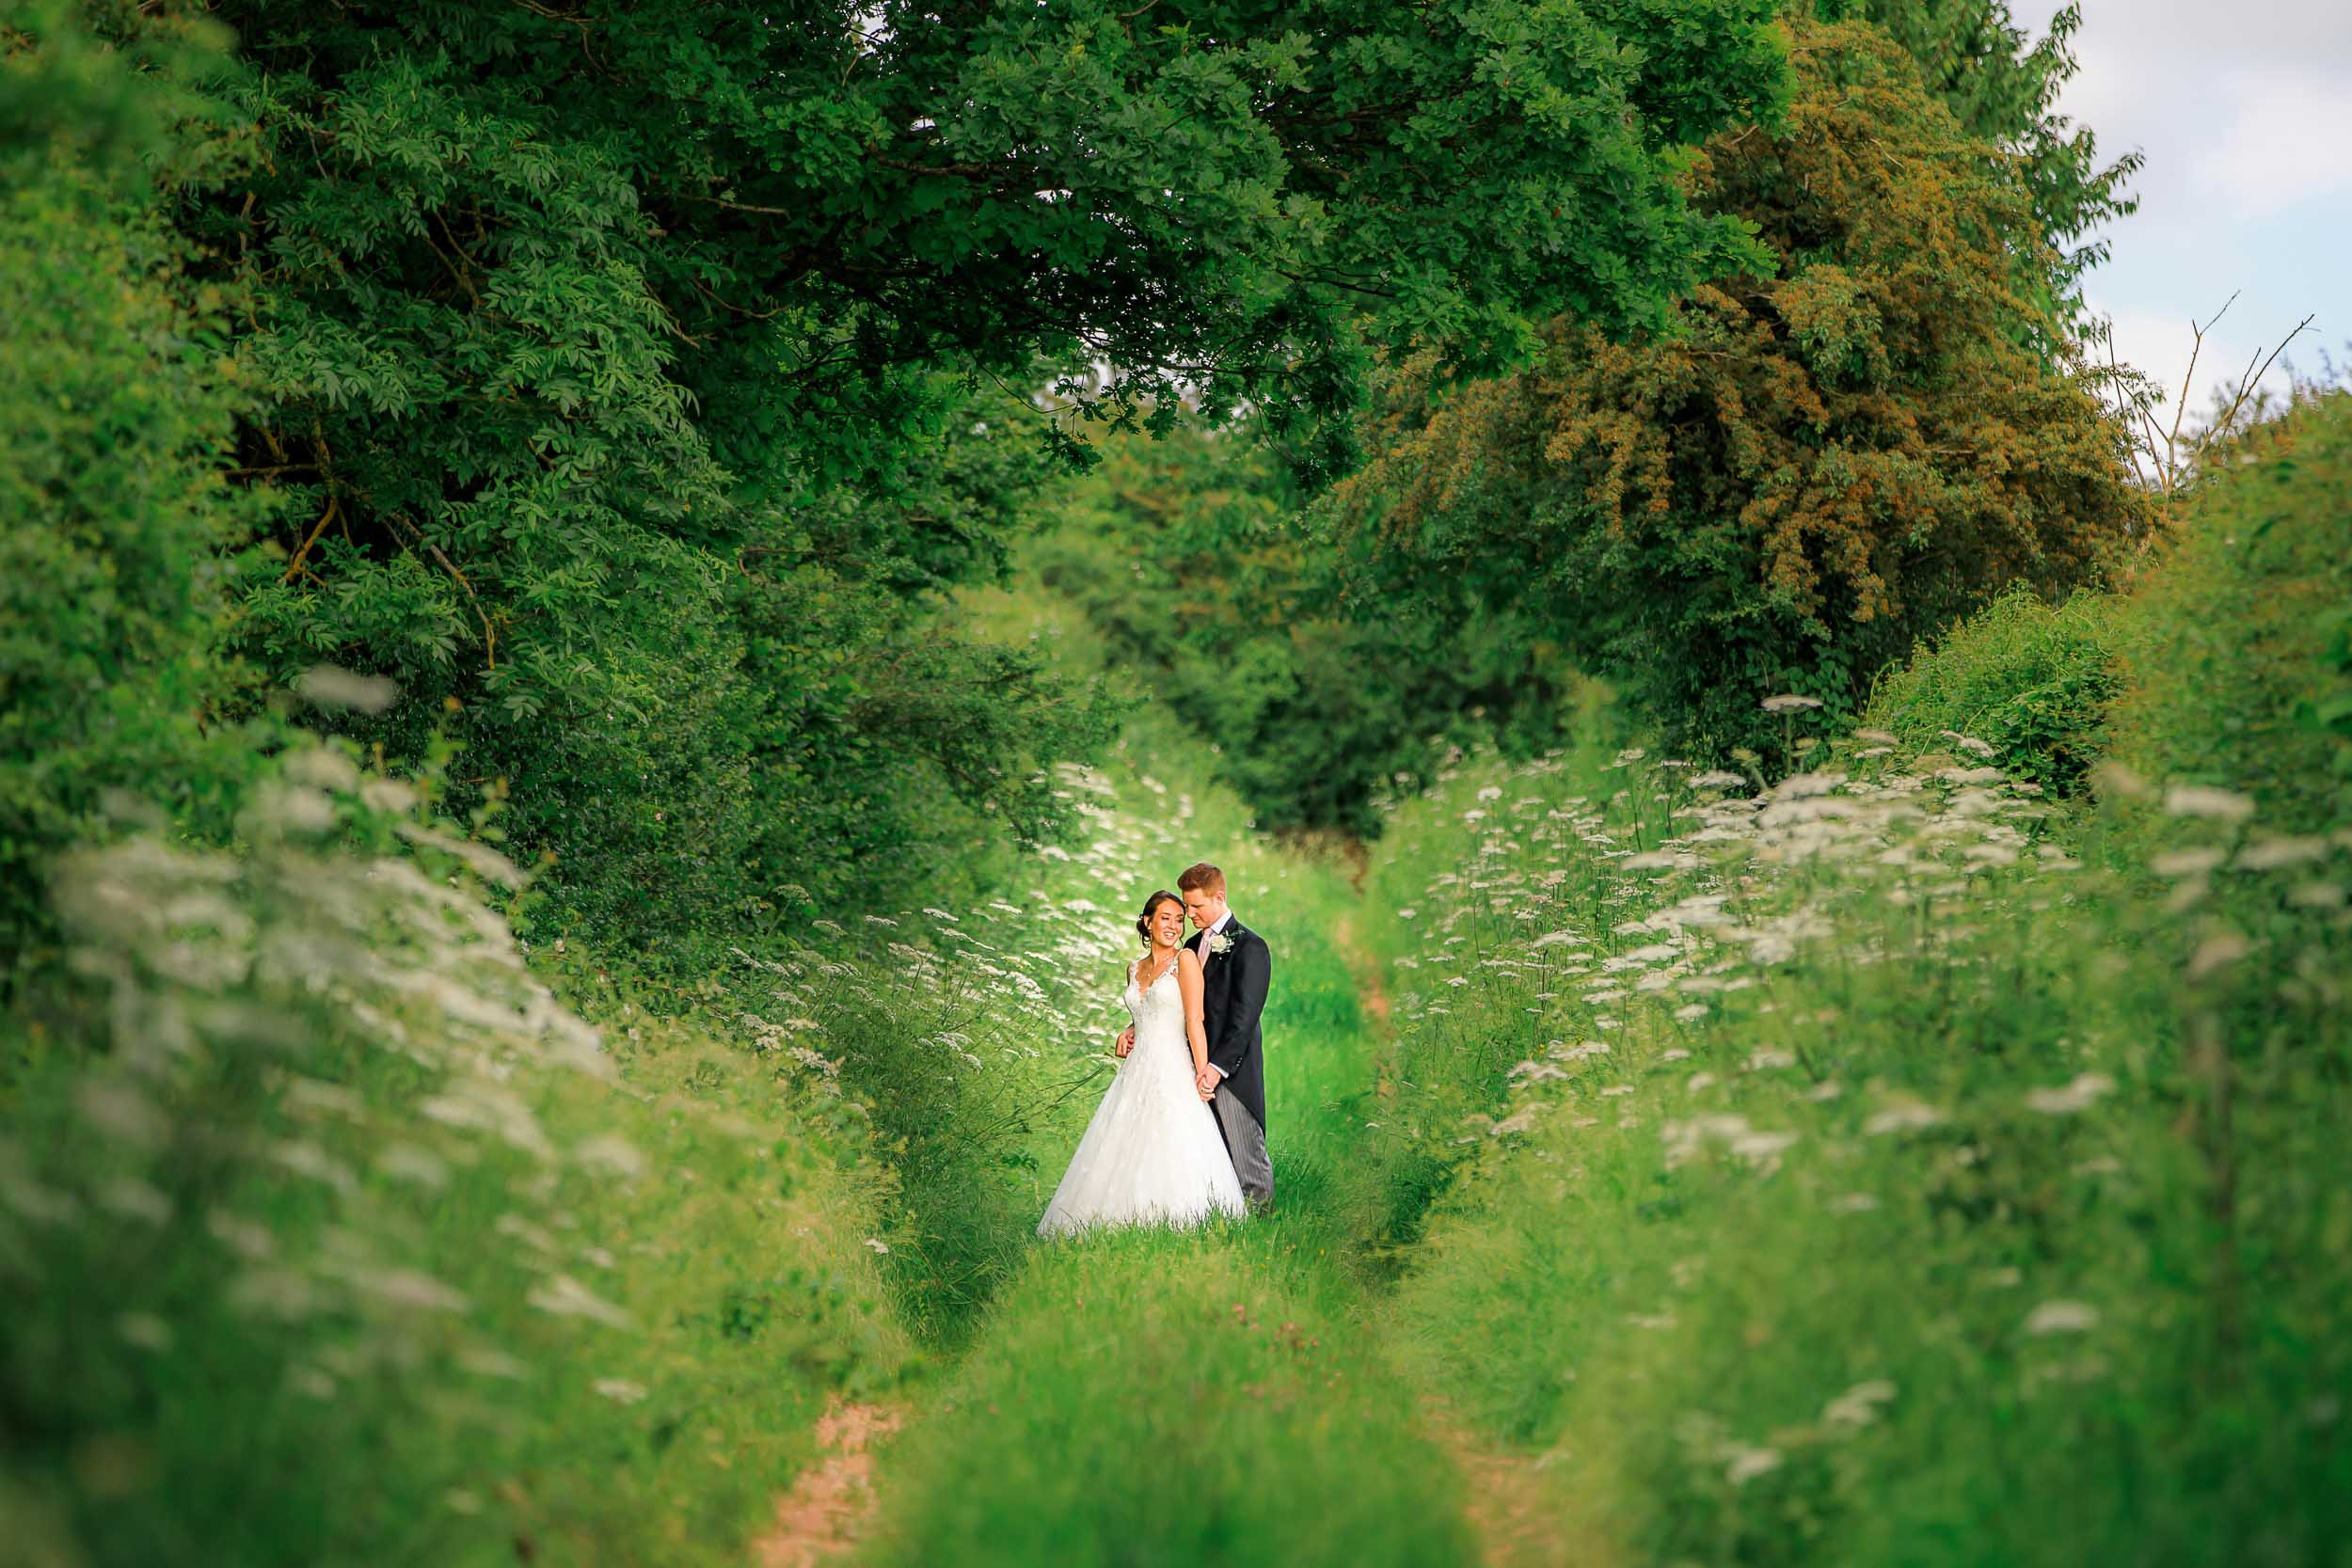 Wedding, Bride, Groom, Herefordshire, Weddings, Photographer, Photographers